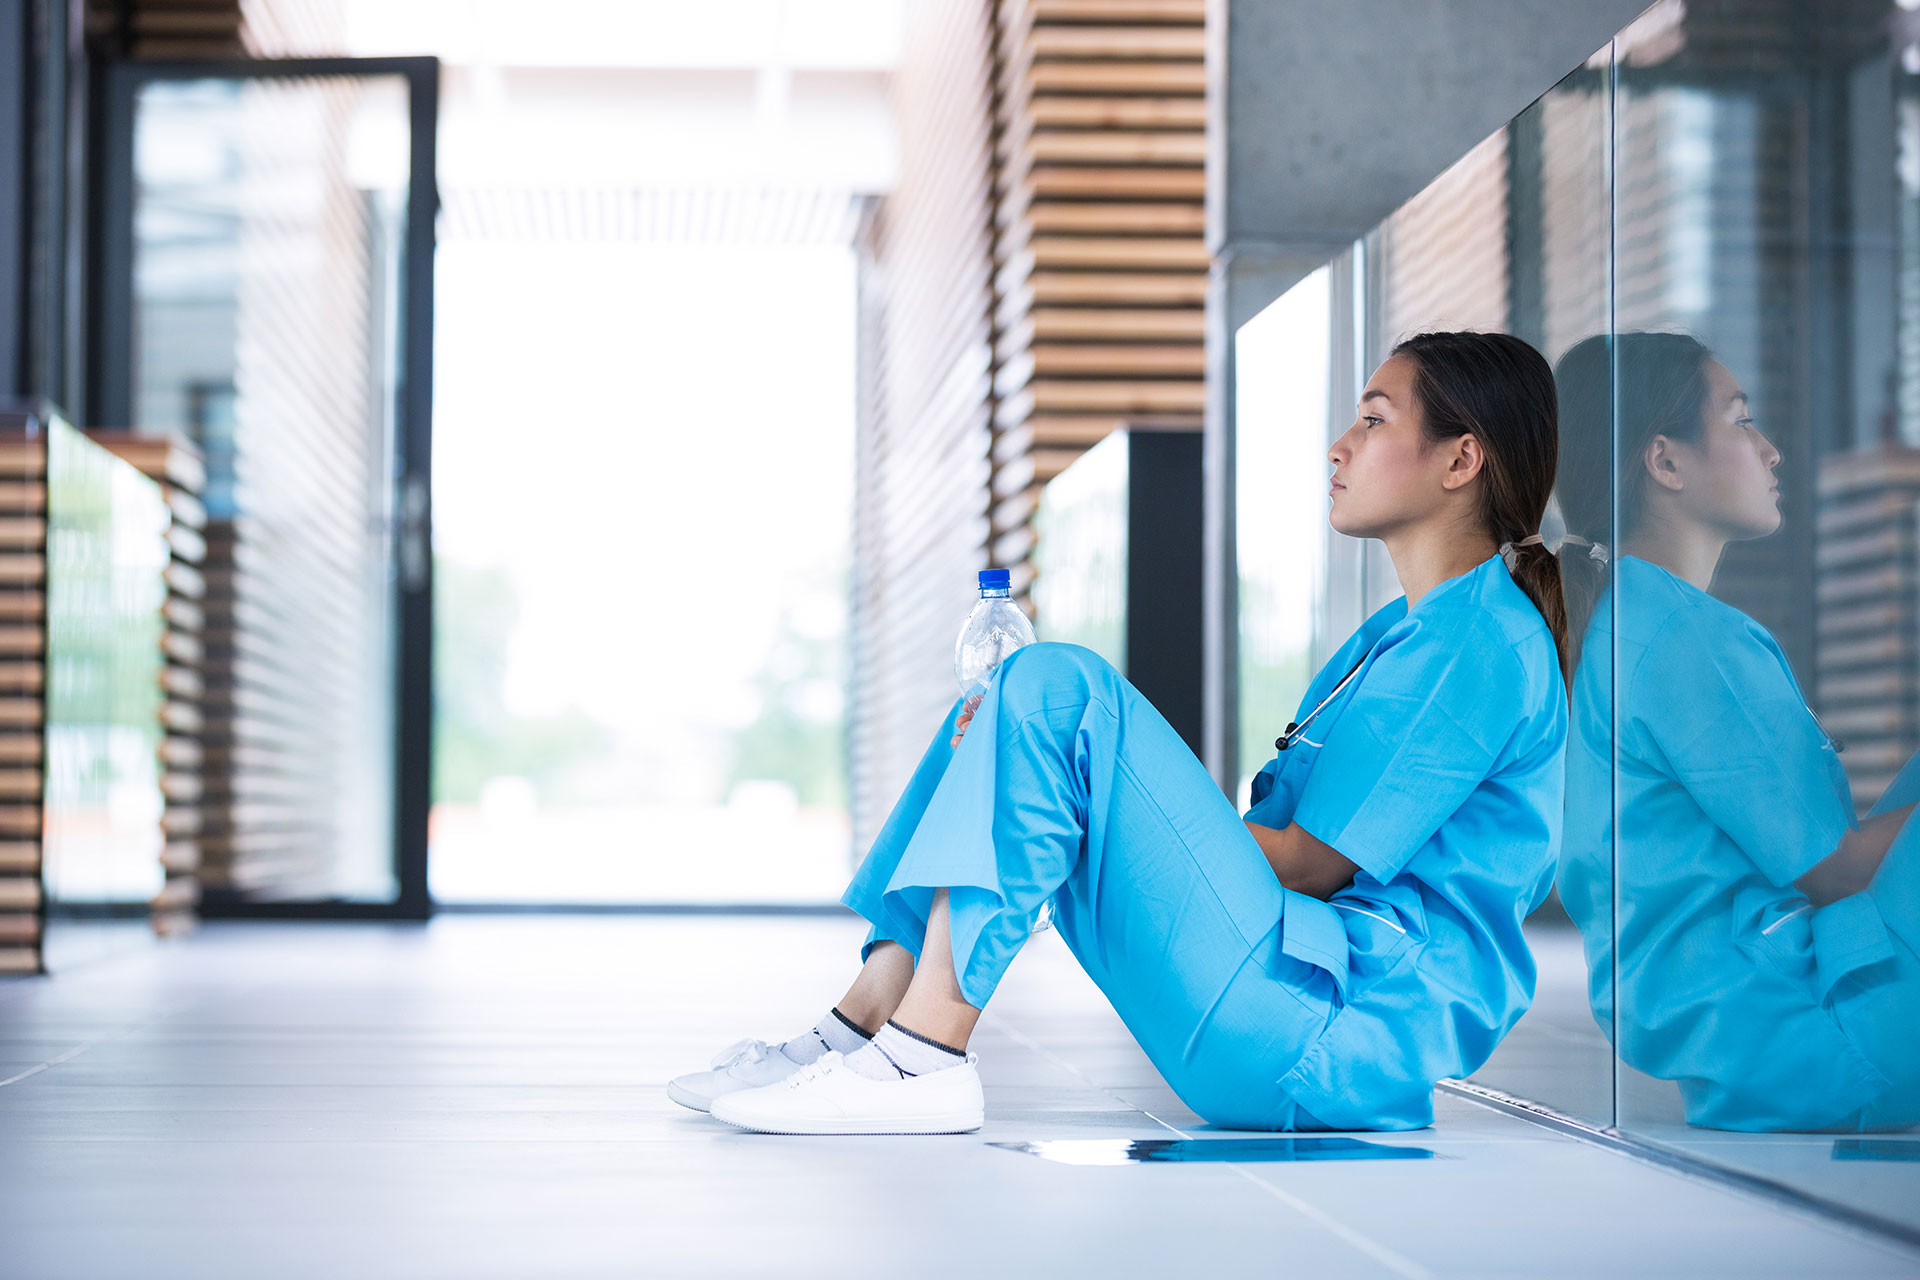 5 Important Things Nurses Do to Stay Healthy